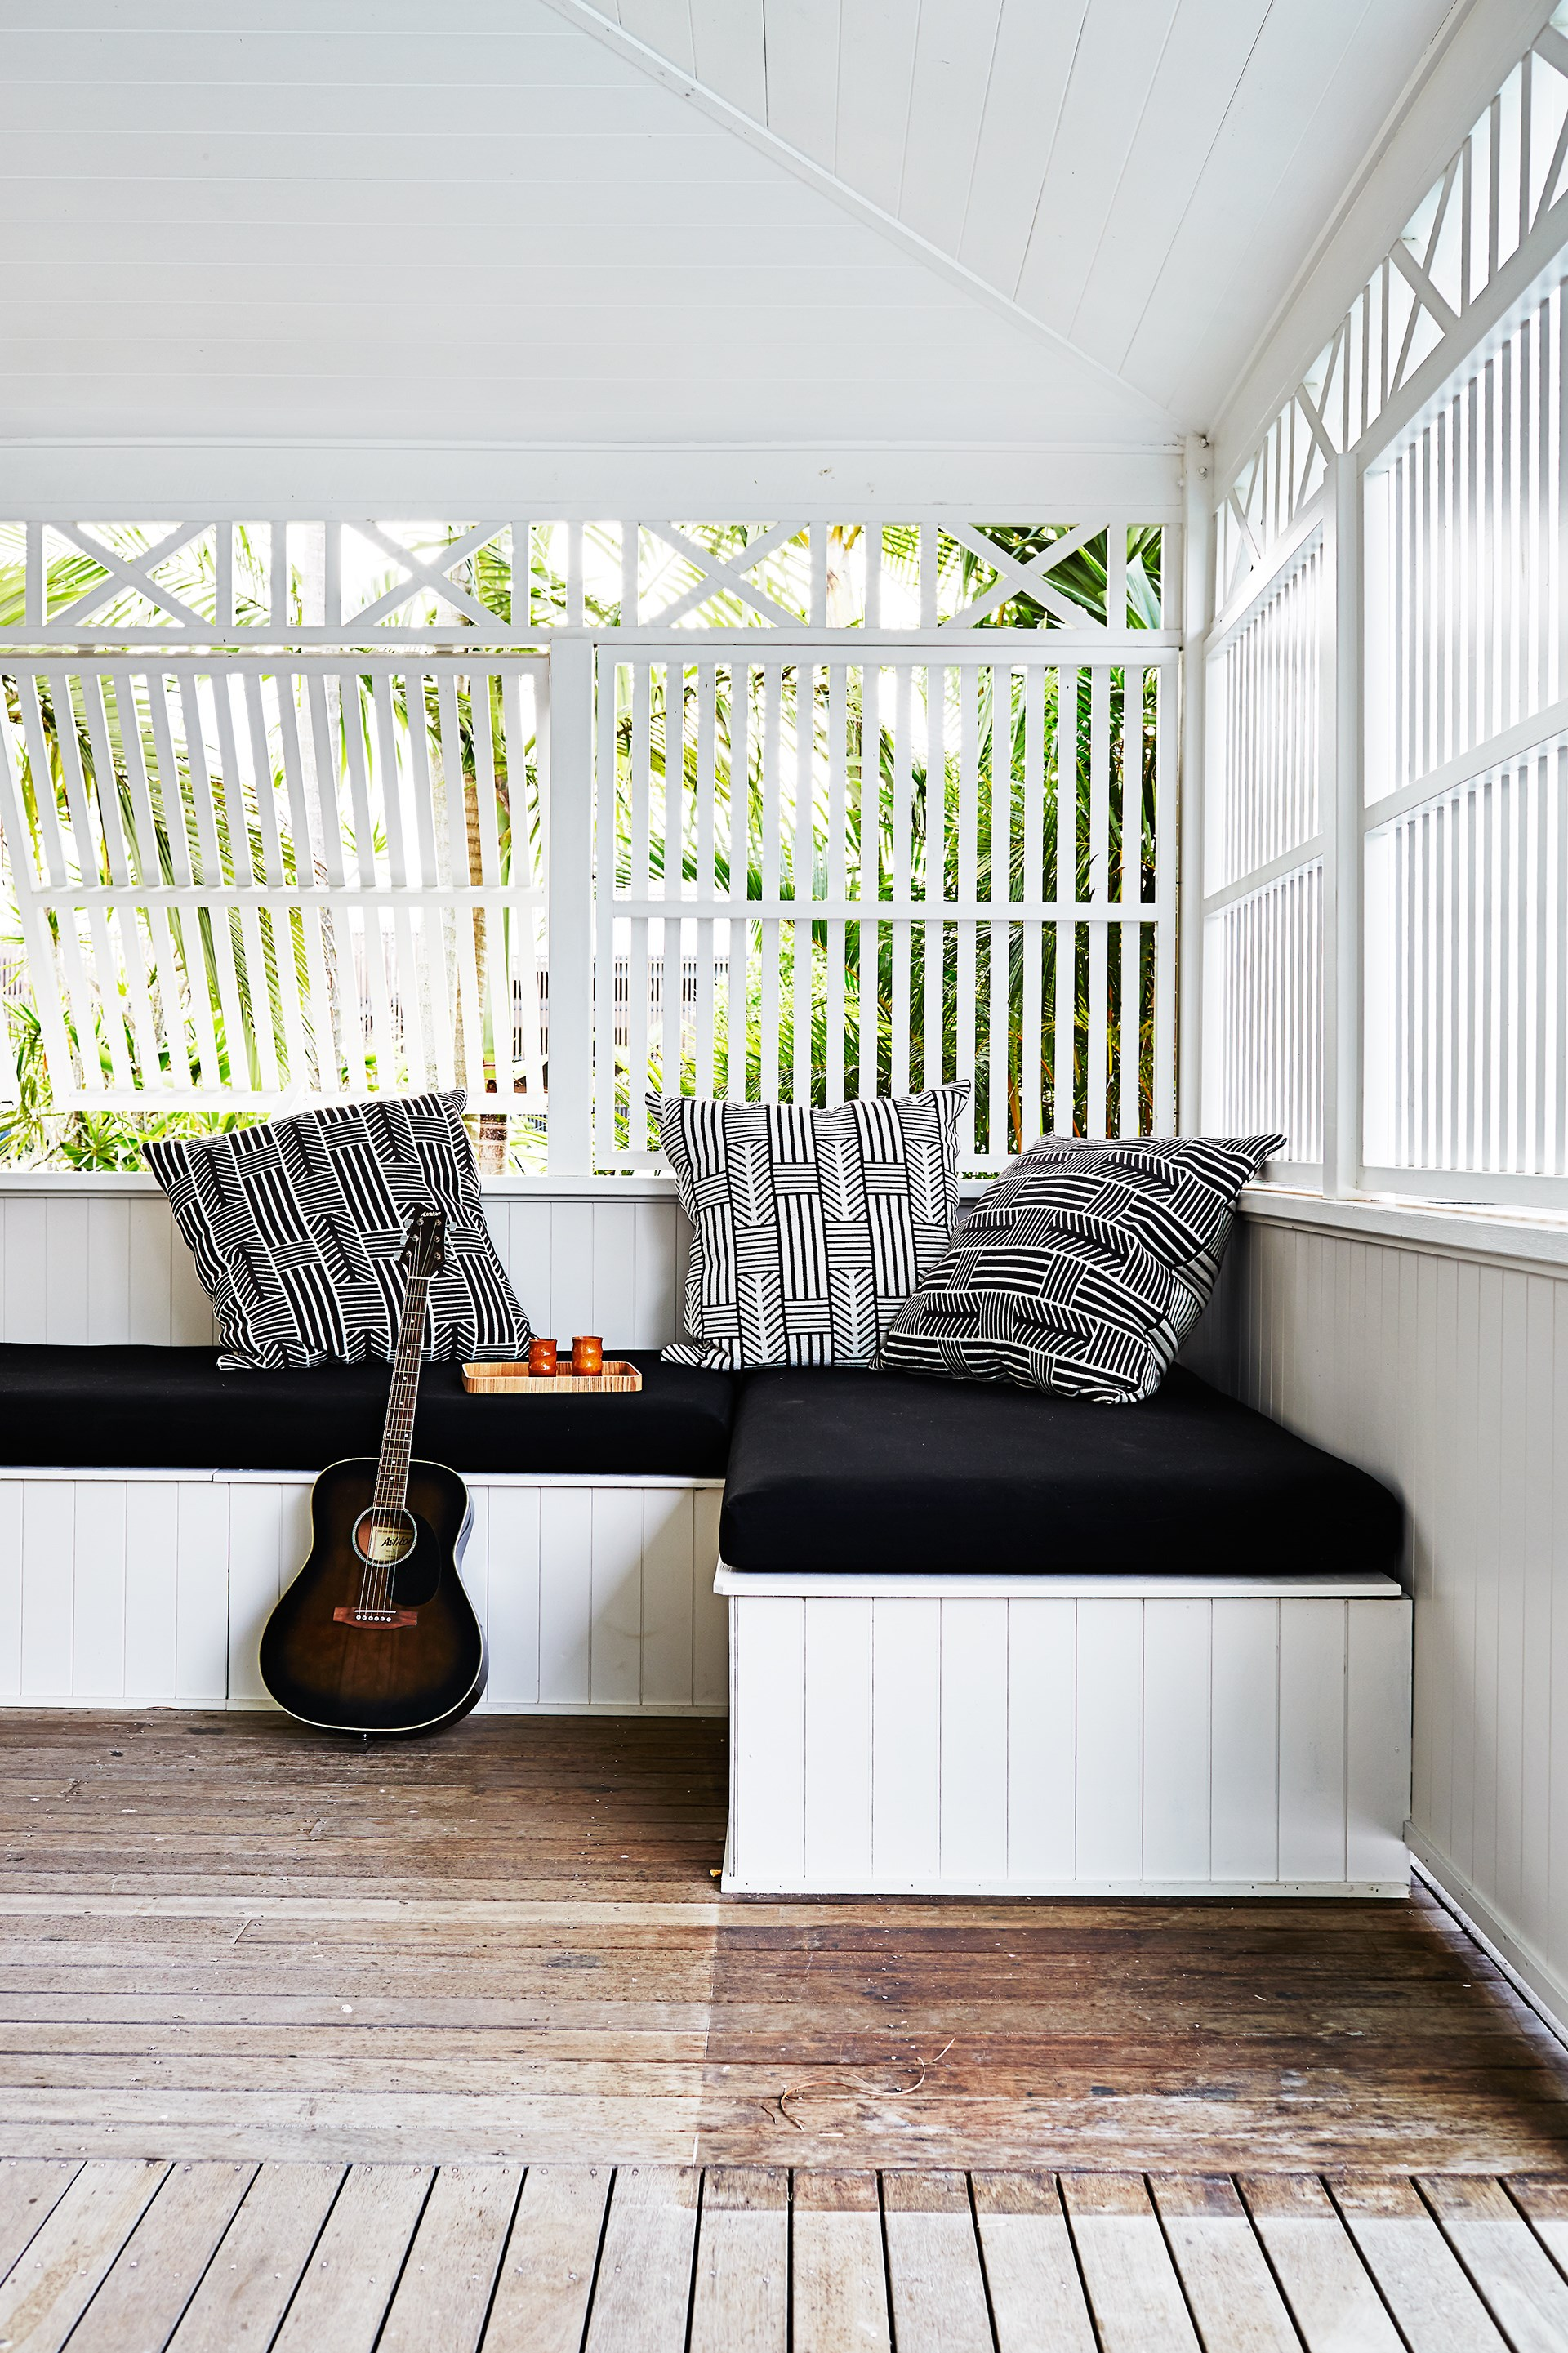 """The deck of this [Byron Bay beach house](https://www.homestolove.com.au/gallery-kimberly-and-stephens-byron-bay-beach-house-1660